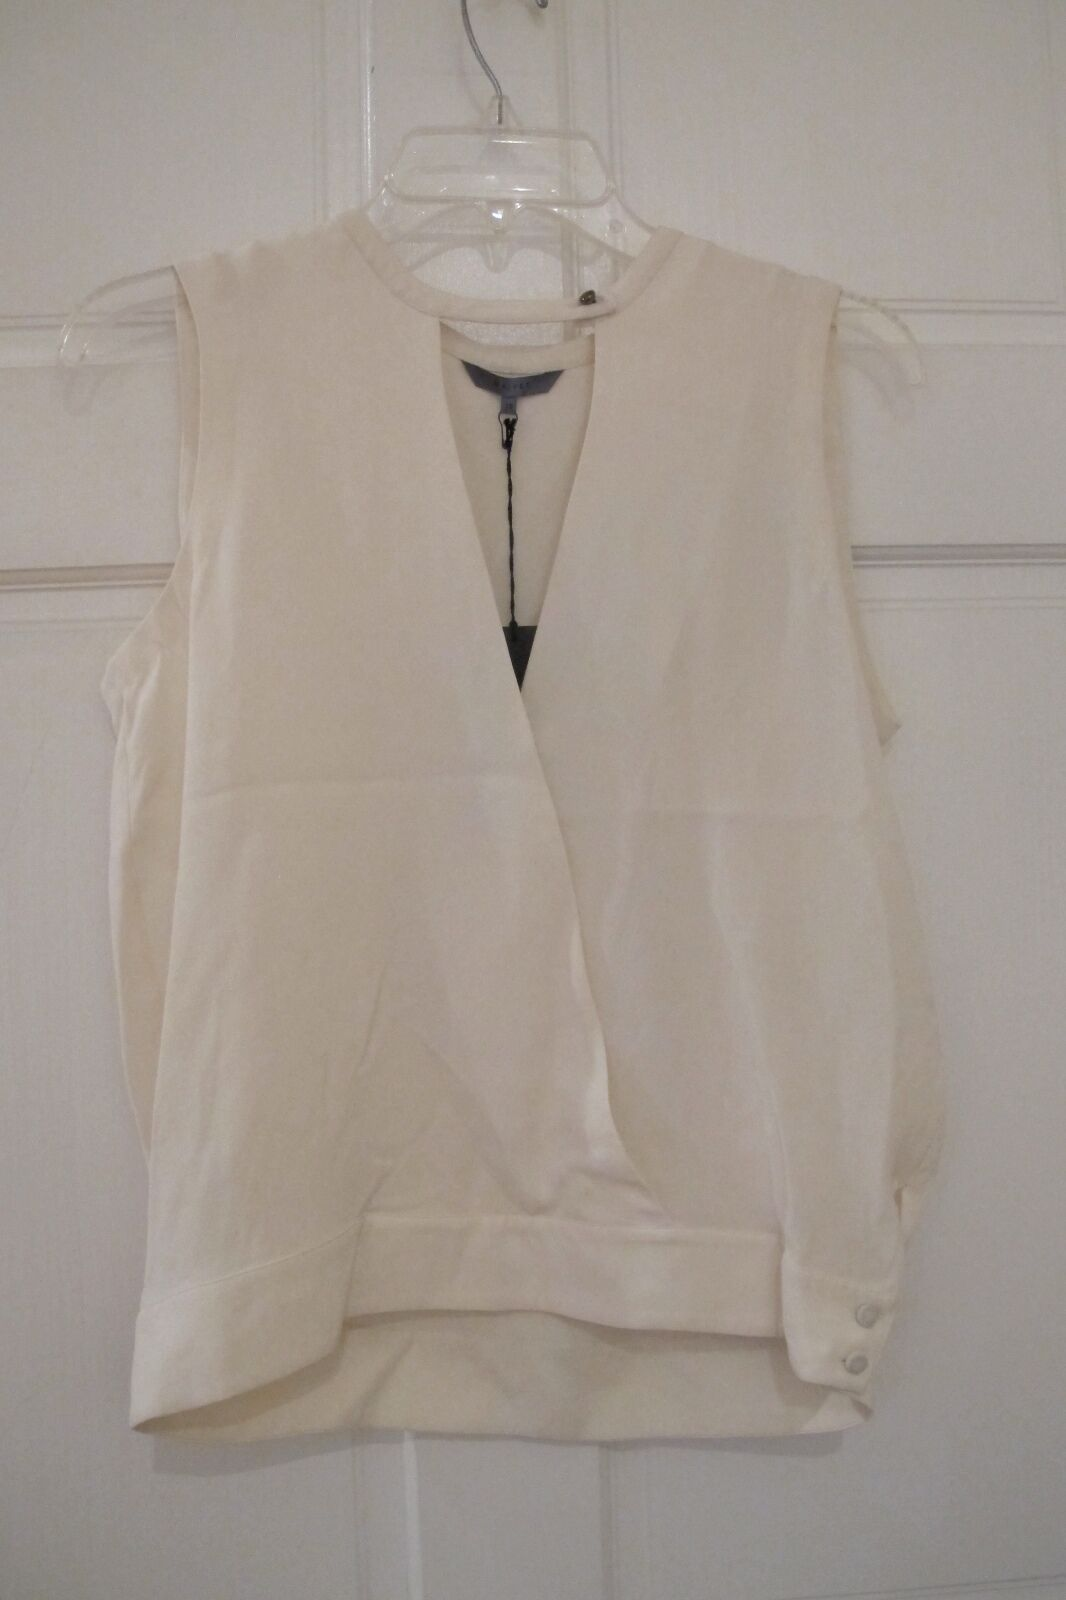 NWT Maiyet OverGrößed Top Silk Plunging Shirt Cream Wear to Work Classic  Sz 38 6